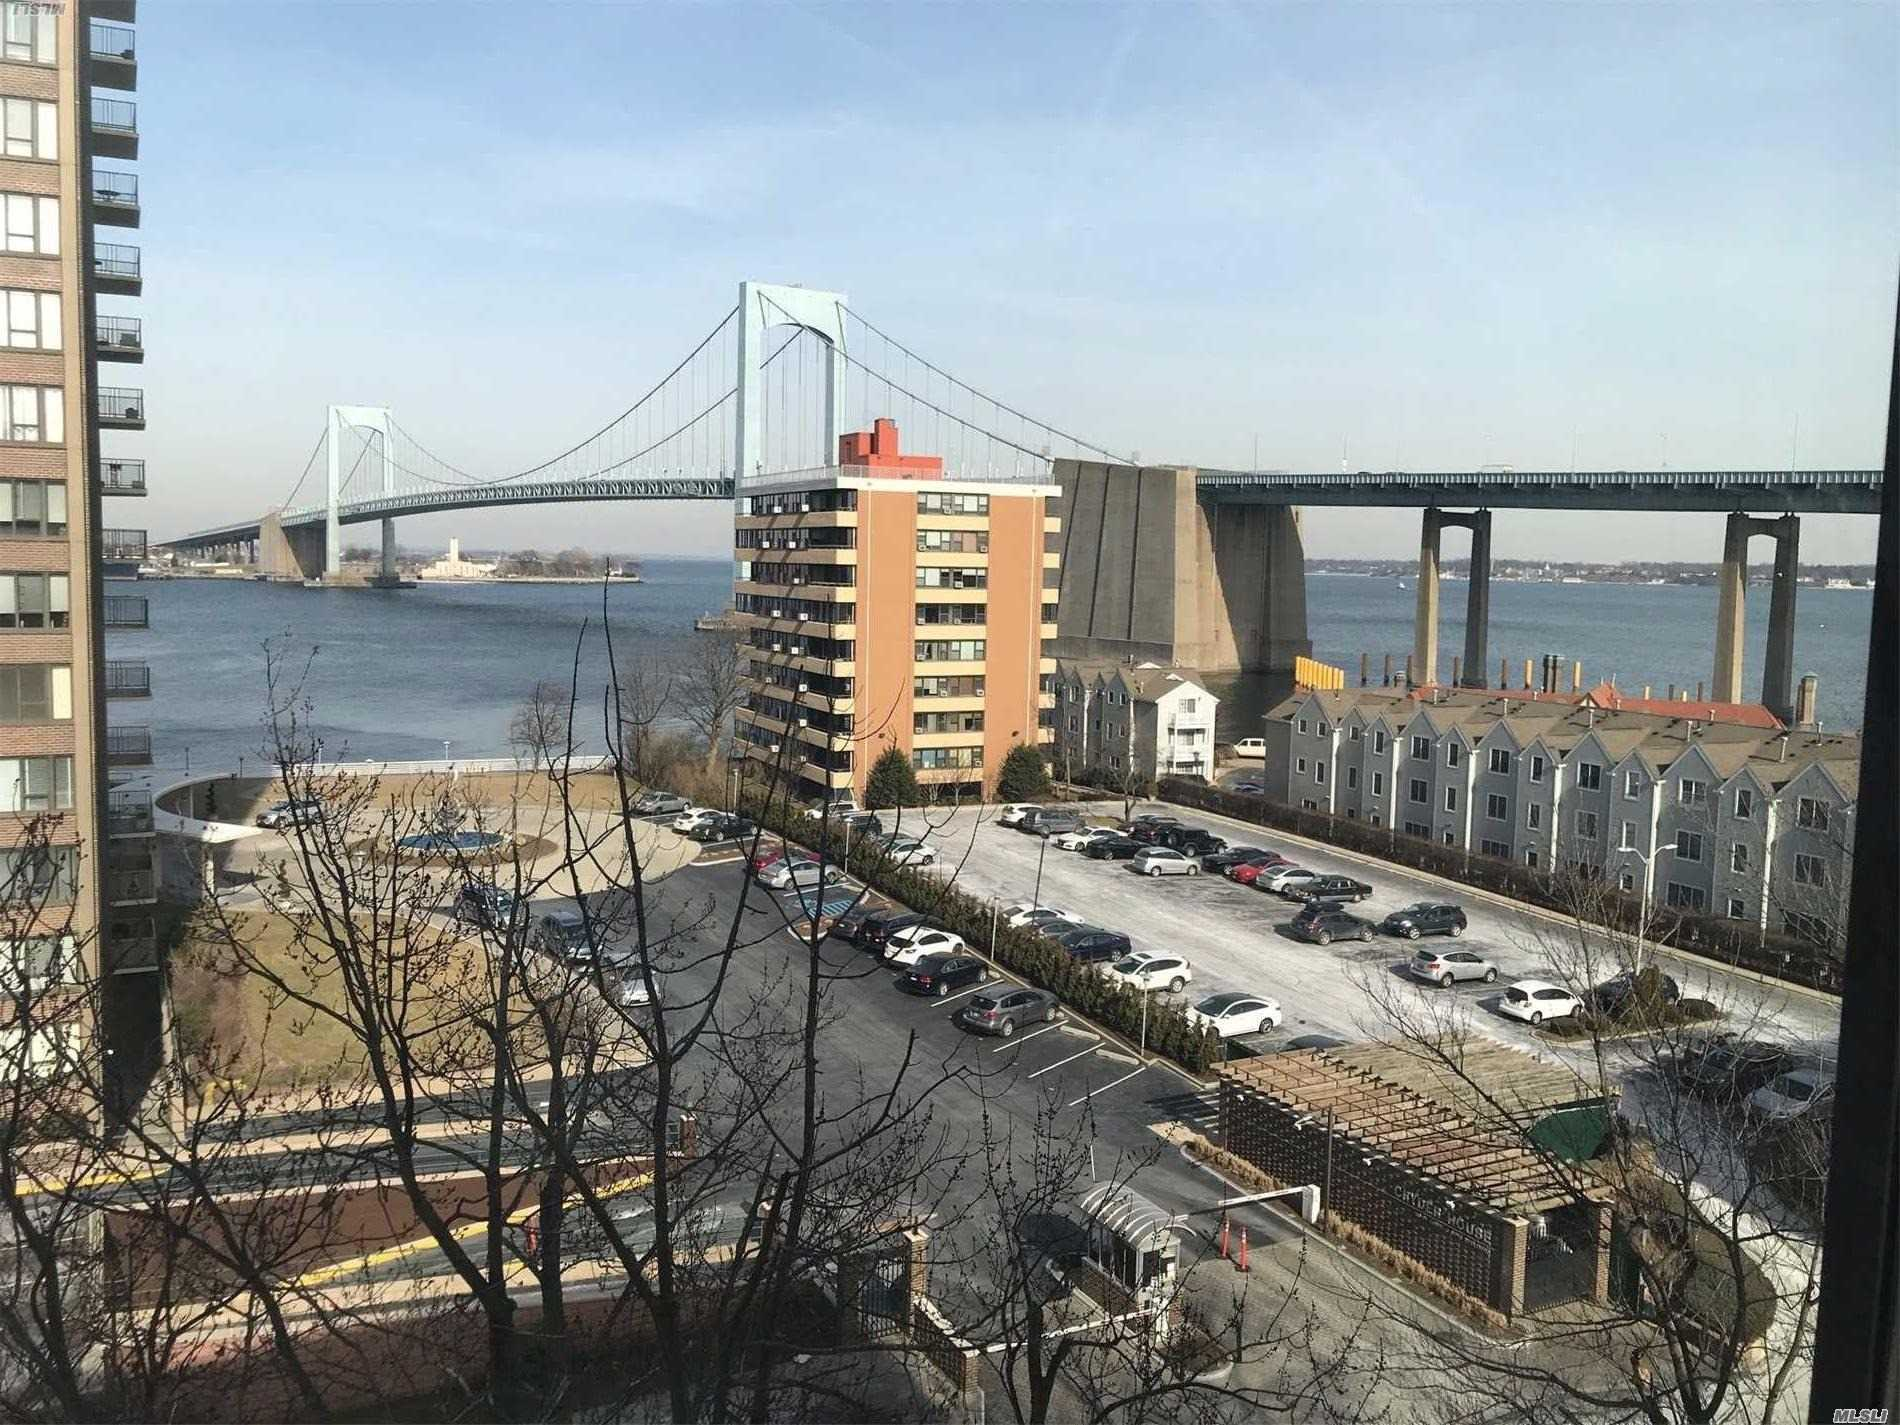 Location Location...Waterfront At Its Best...Panoramic Water And Bridge Views From Every Window ... Renovated Kitchen With Oak Cabinets And Corian Counter Tops....Engineered Hardwood Floors In Living Room And One Bedroom...Updated Bath...Prime Parking Available For Transfer M41